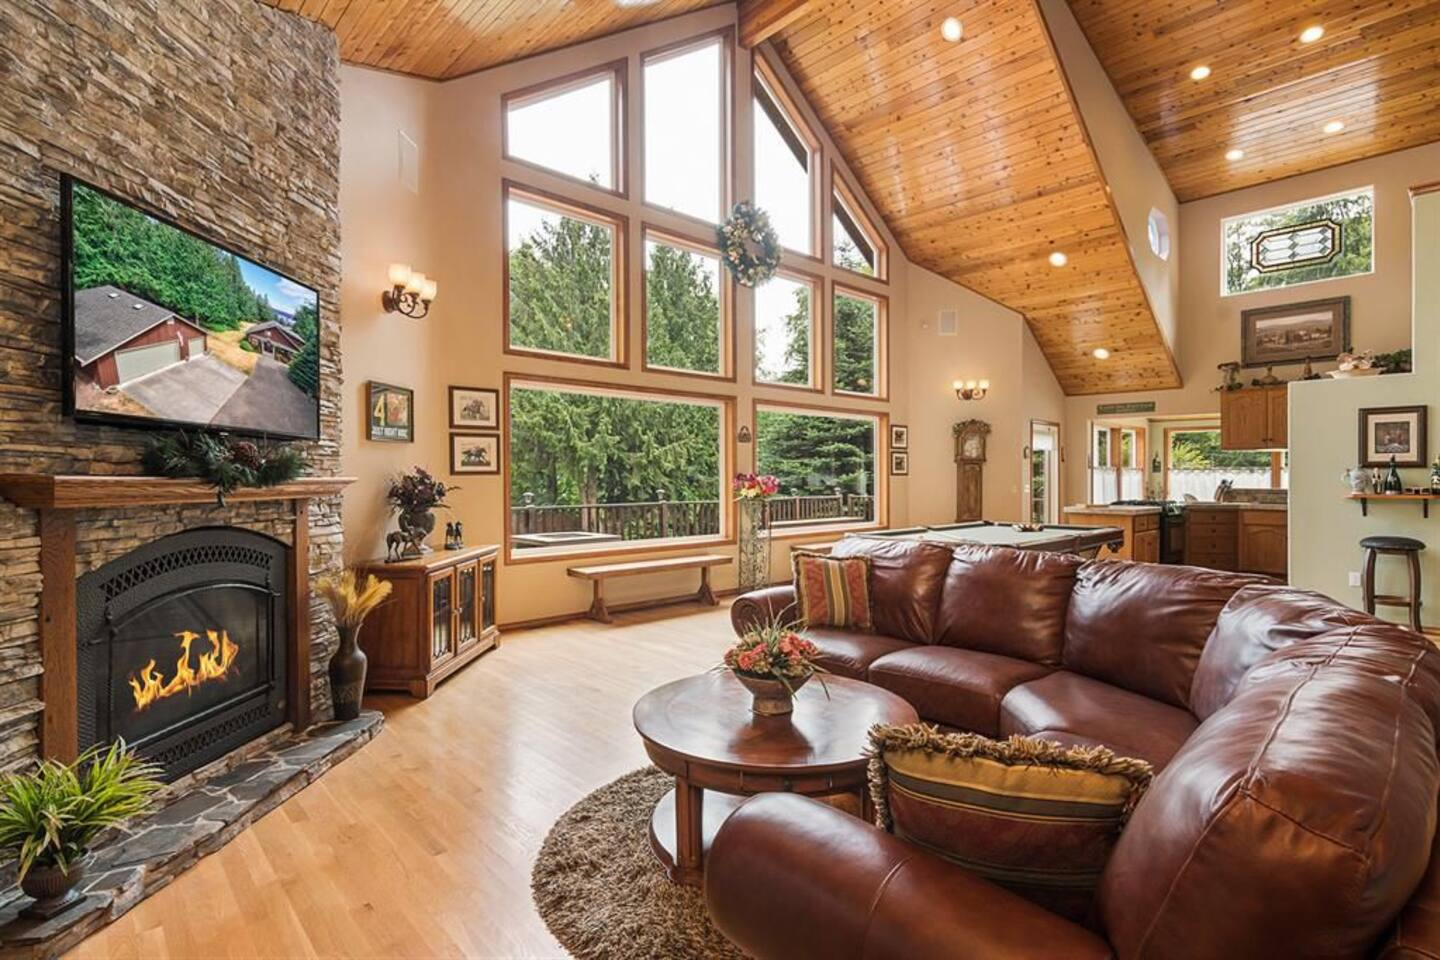 Large Picture Windows in Main Living Area With Cozy Gas Fireplace